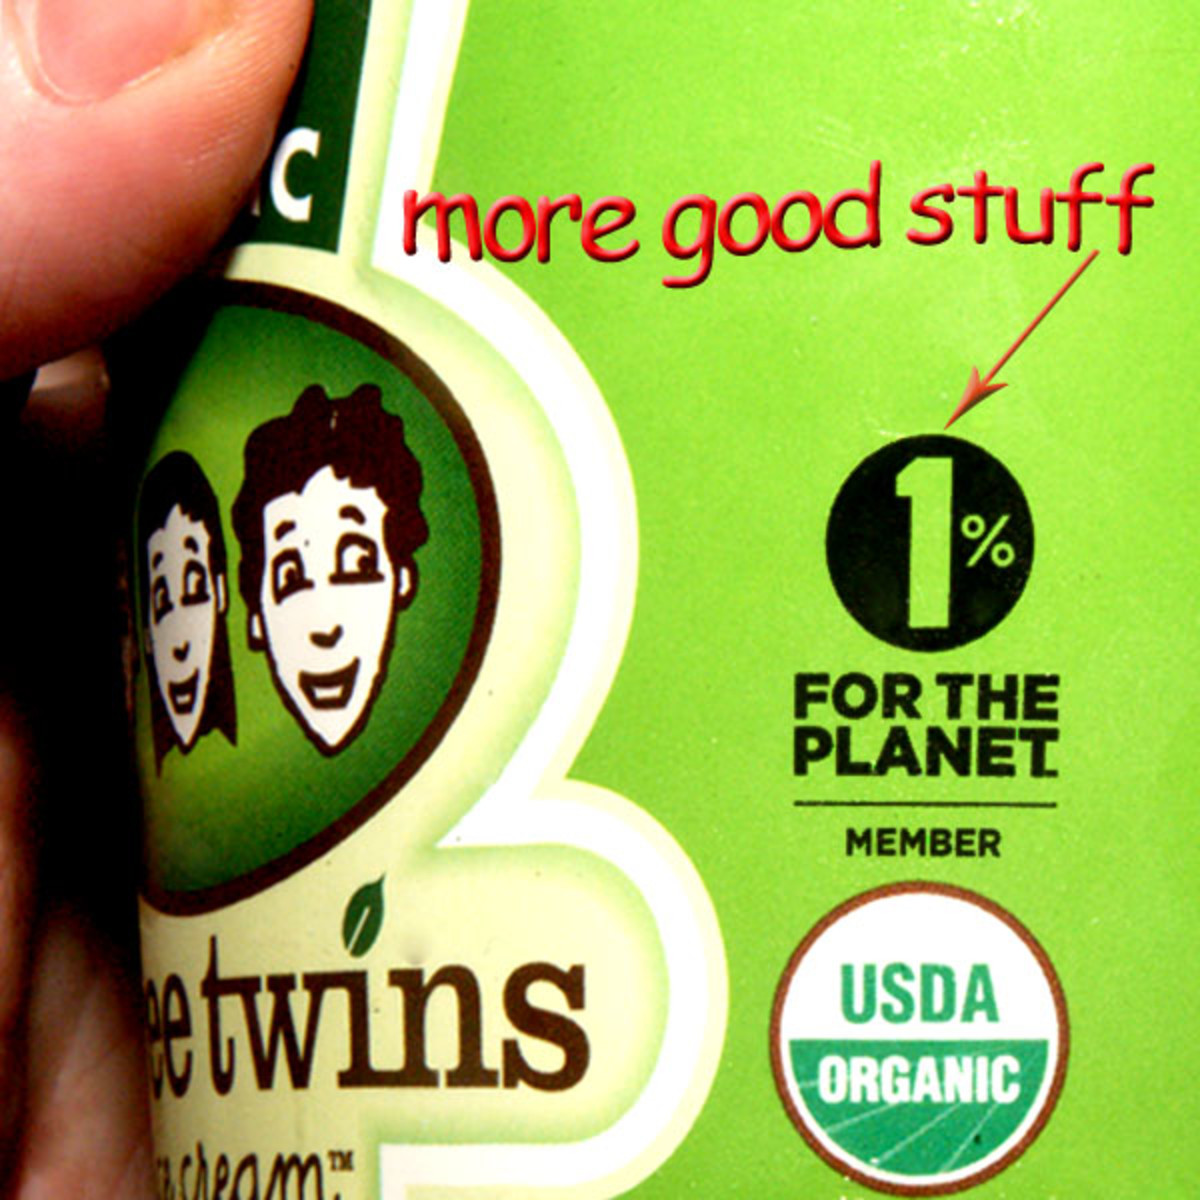 Earth-friendly ice cream makers!